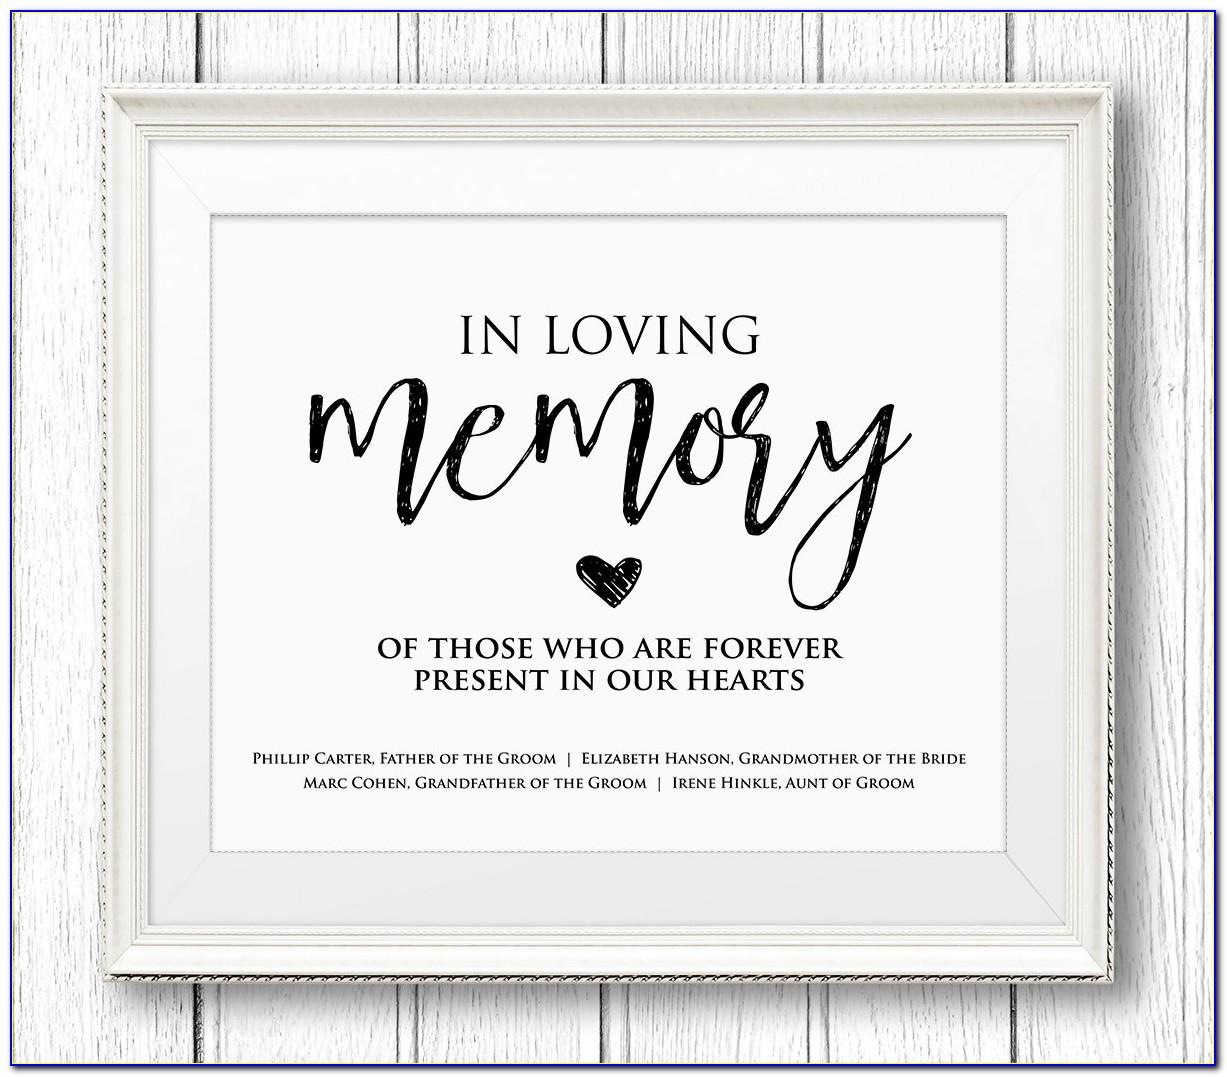 In Loving Memory Template Free